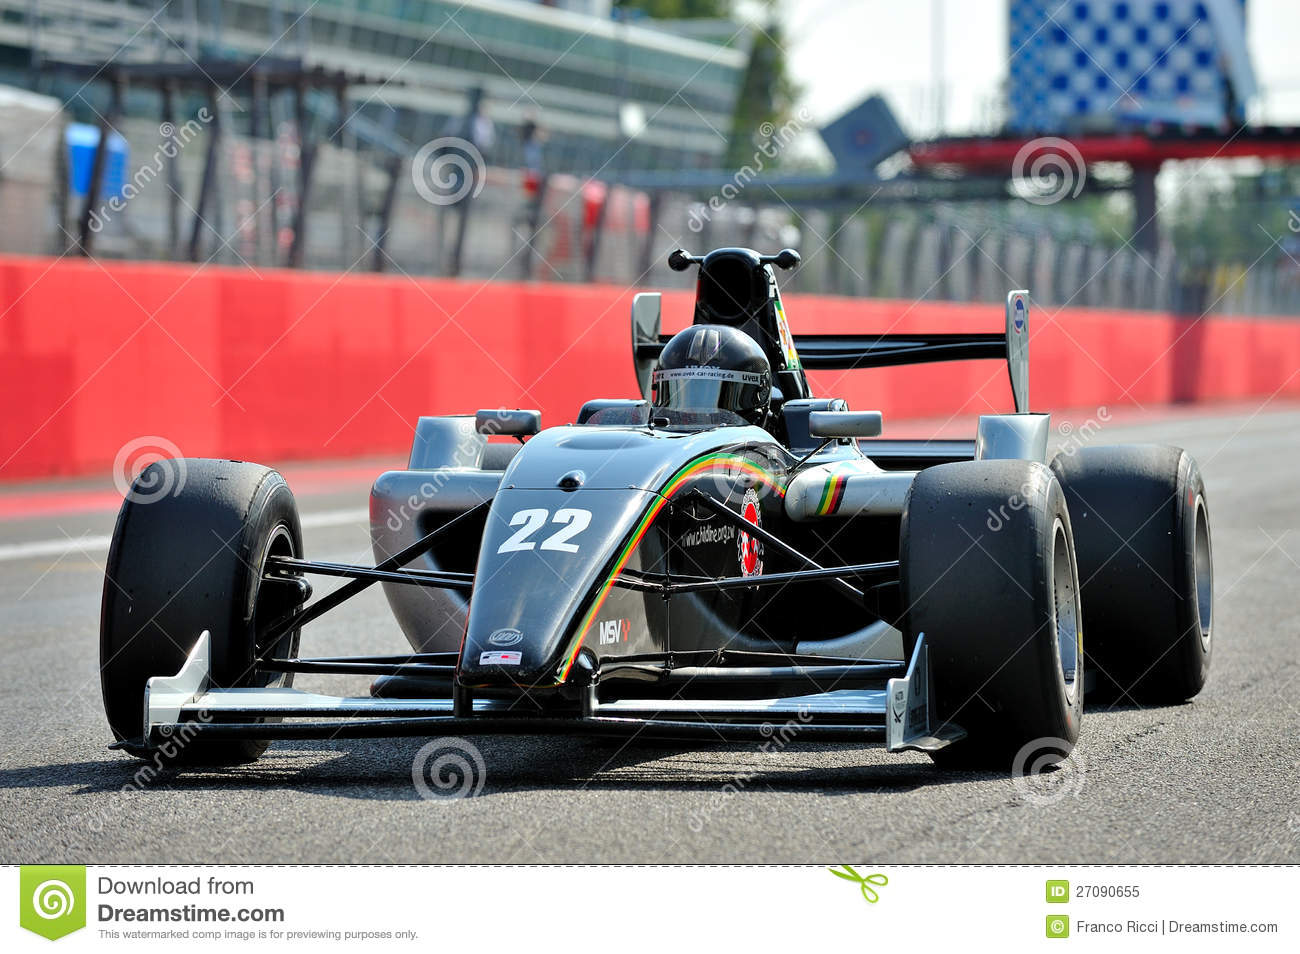 Formula 3 Race Car In Monza Race Track Editorial Image - Image ...